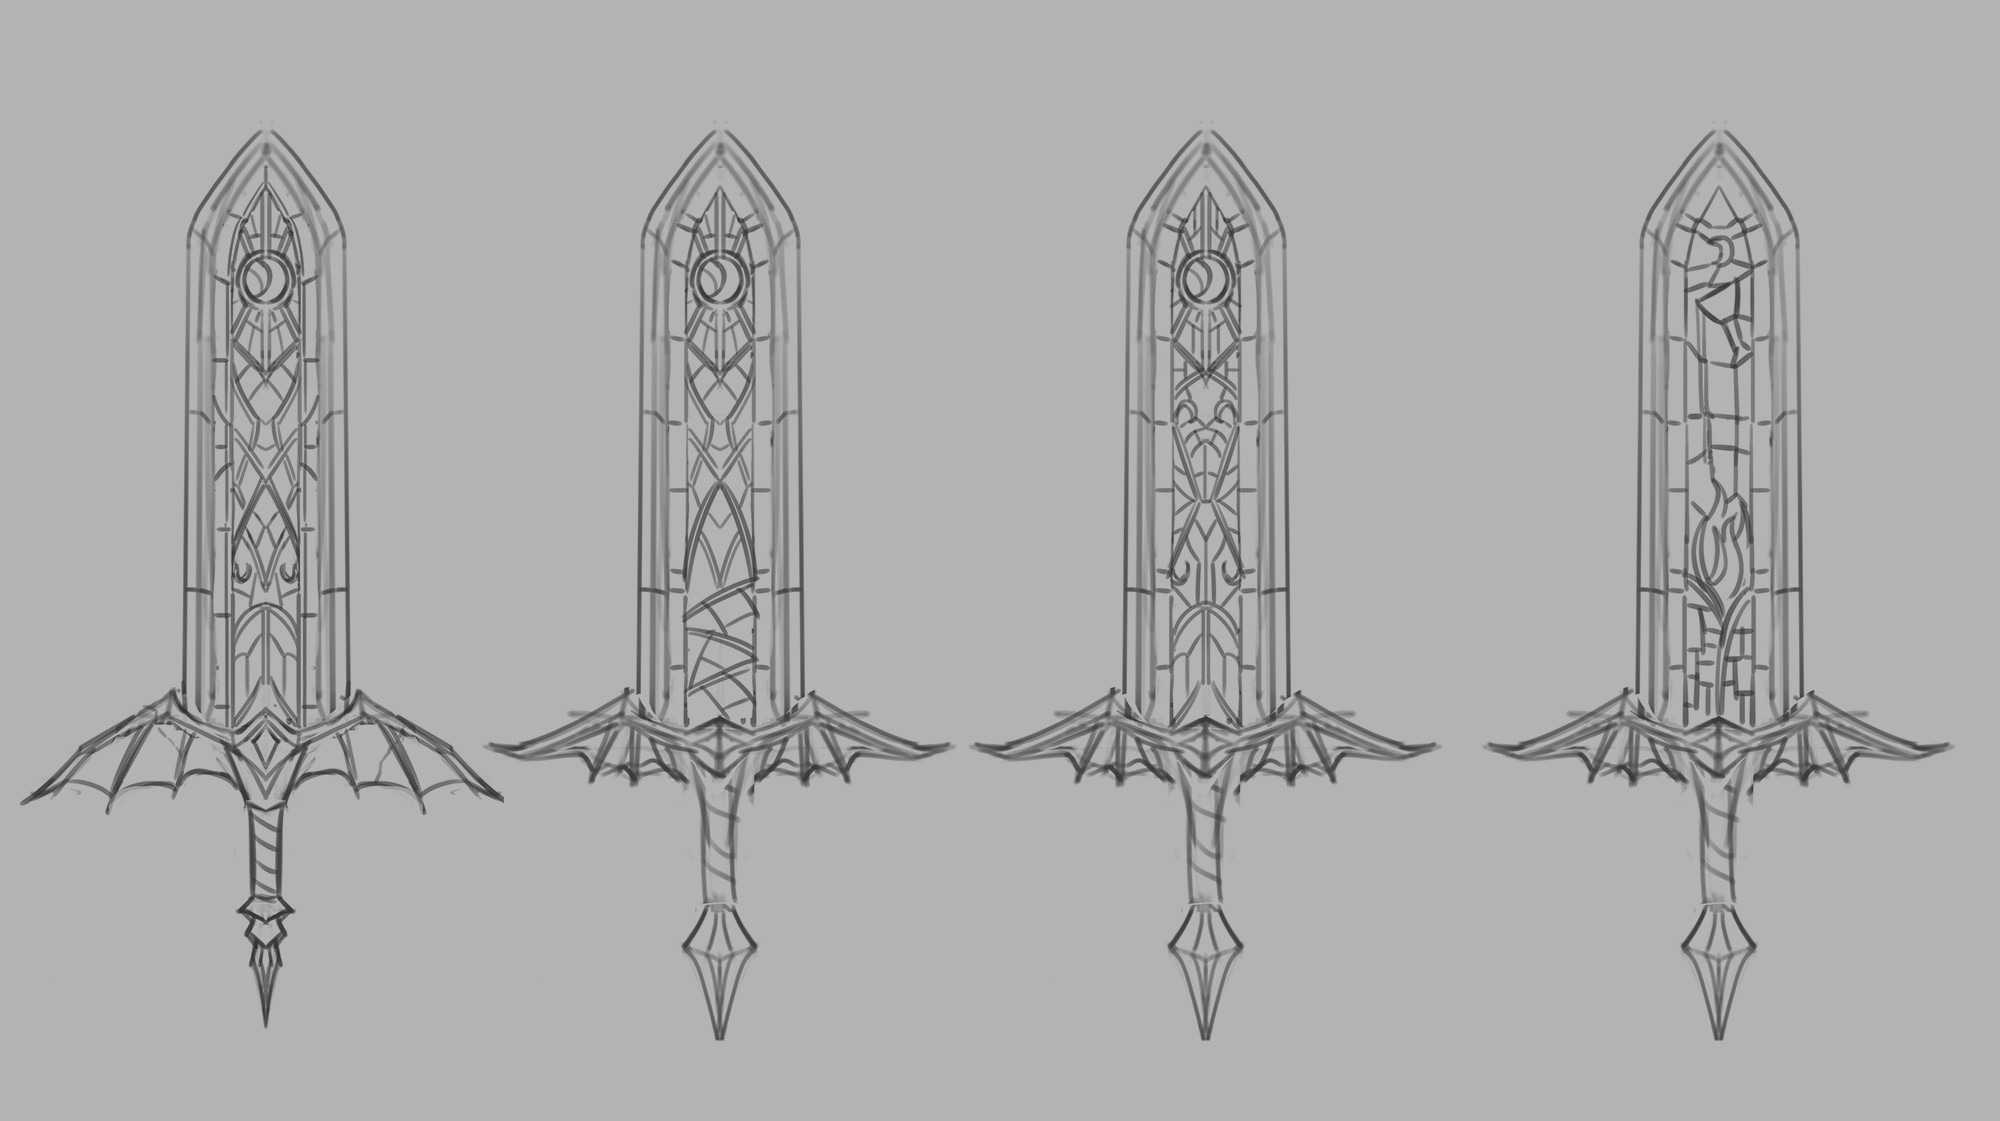 Stained glass design exploration